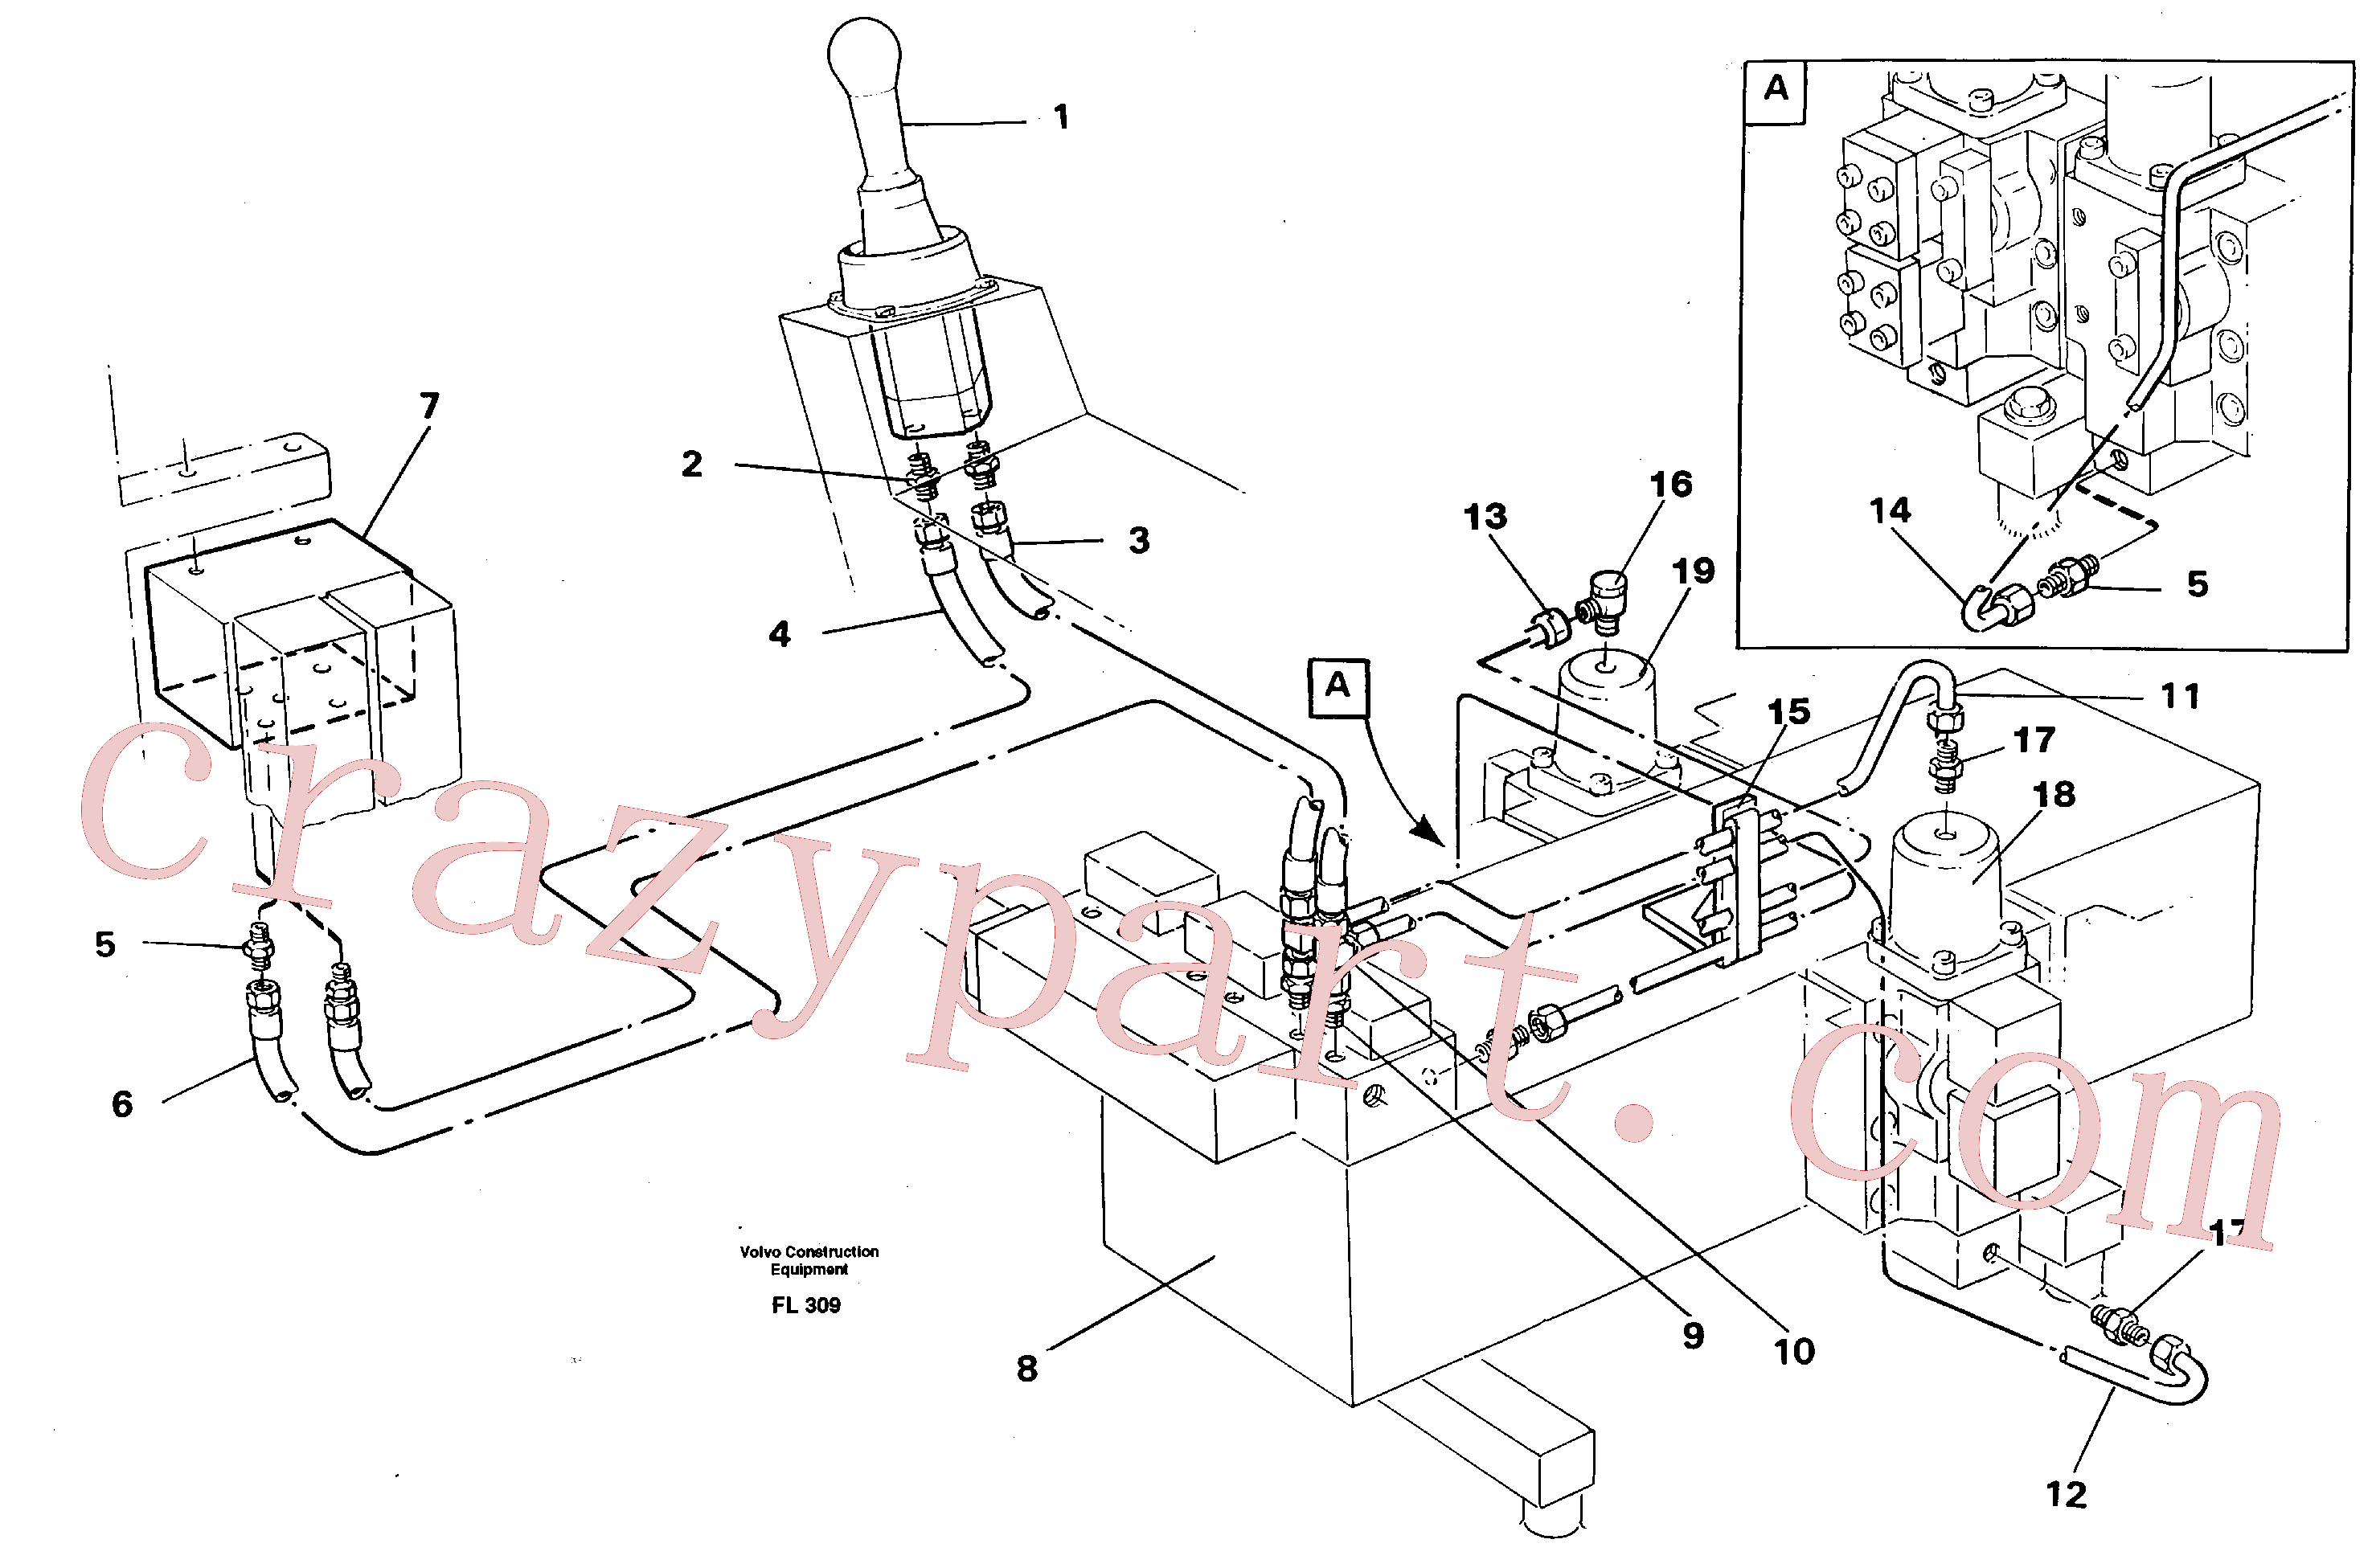 VOE14246658 for Volvo Servo hydraulics, dipper arm(FL309 assembly)